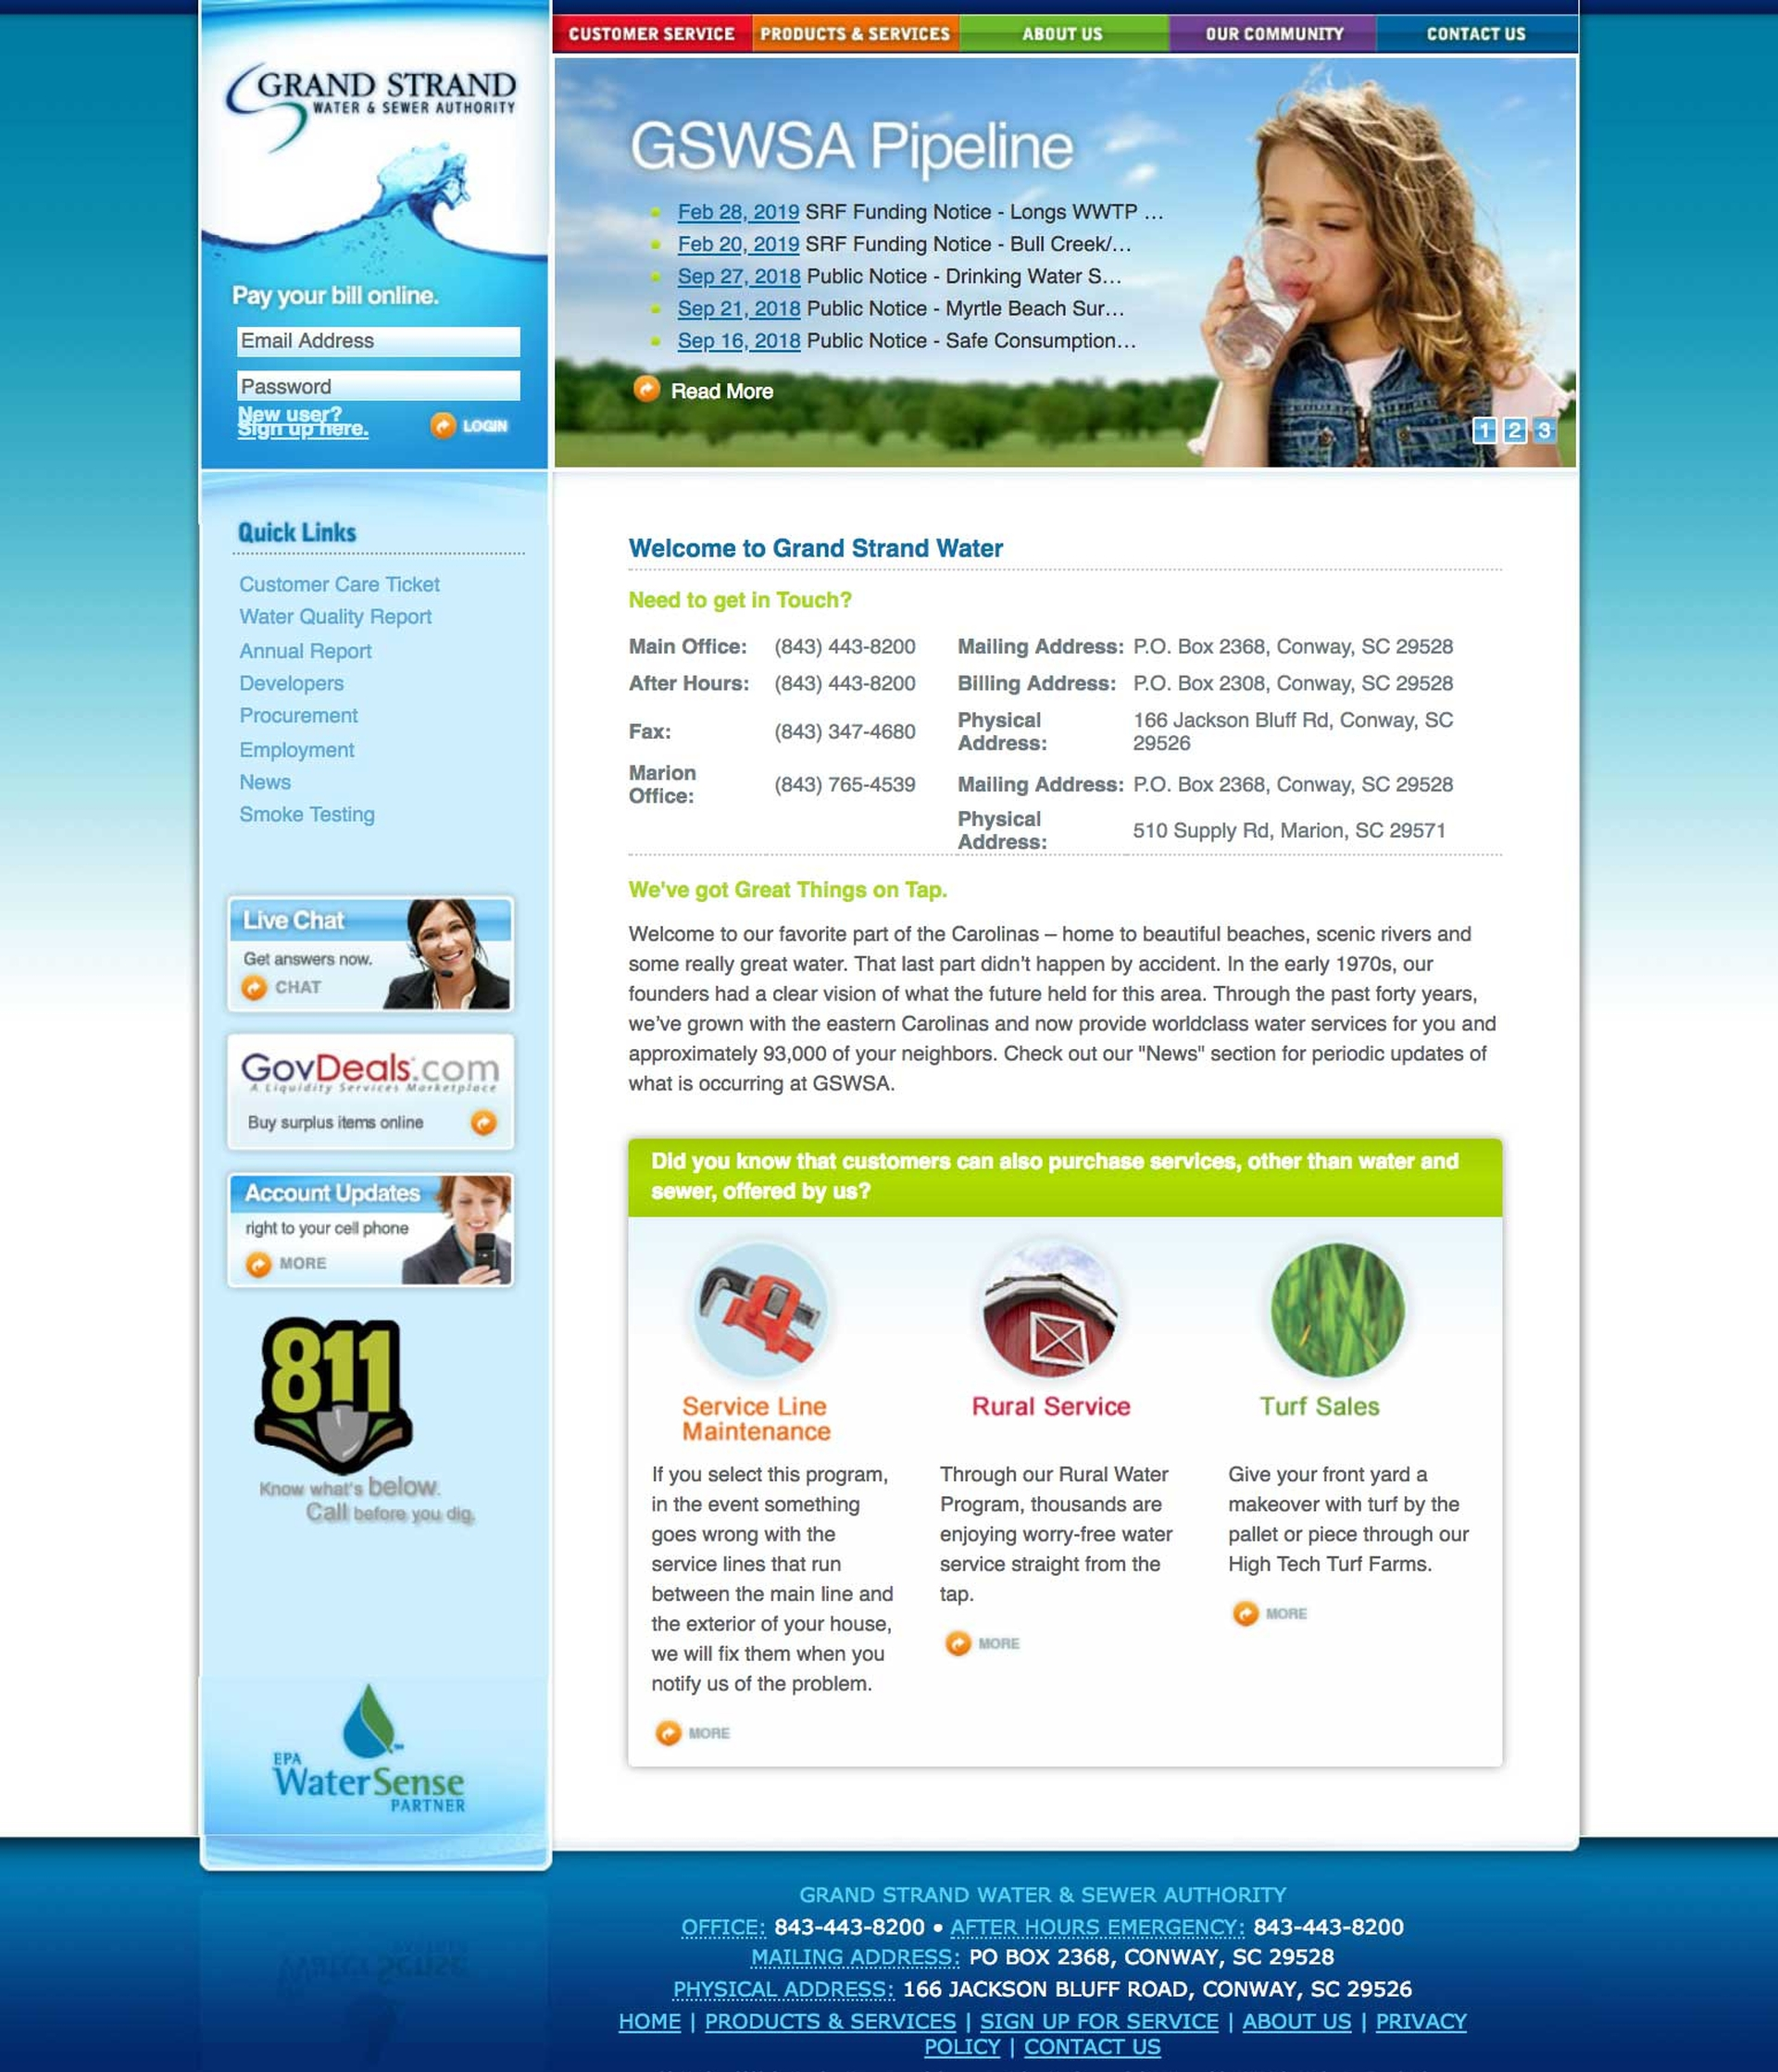 Grand Strand Water & Sewer Website